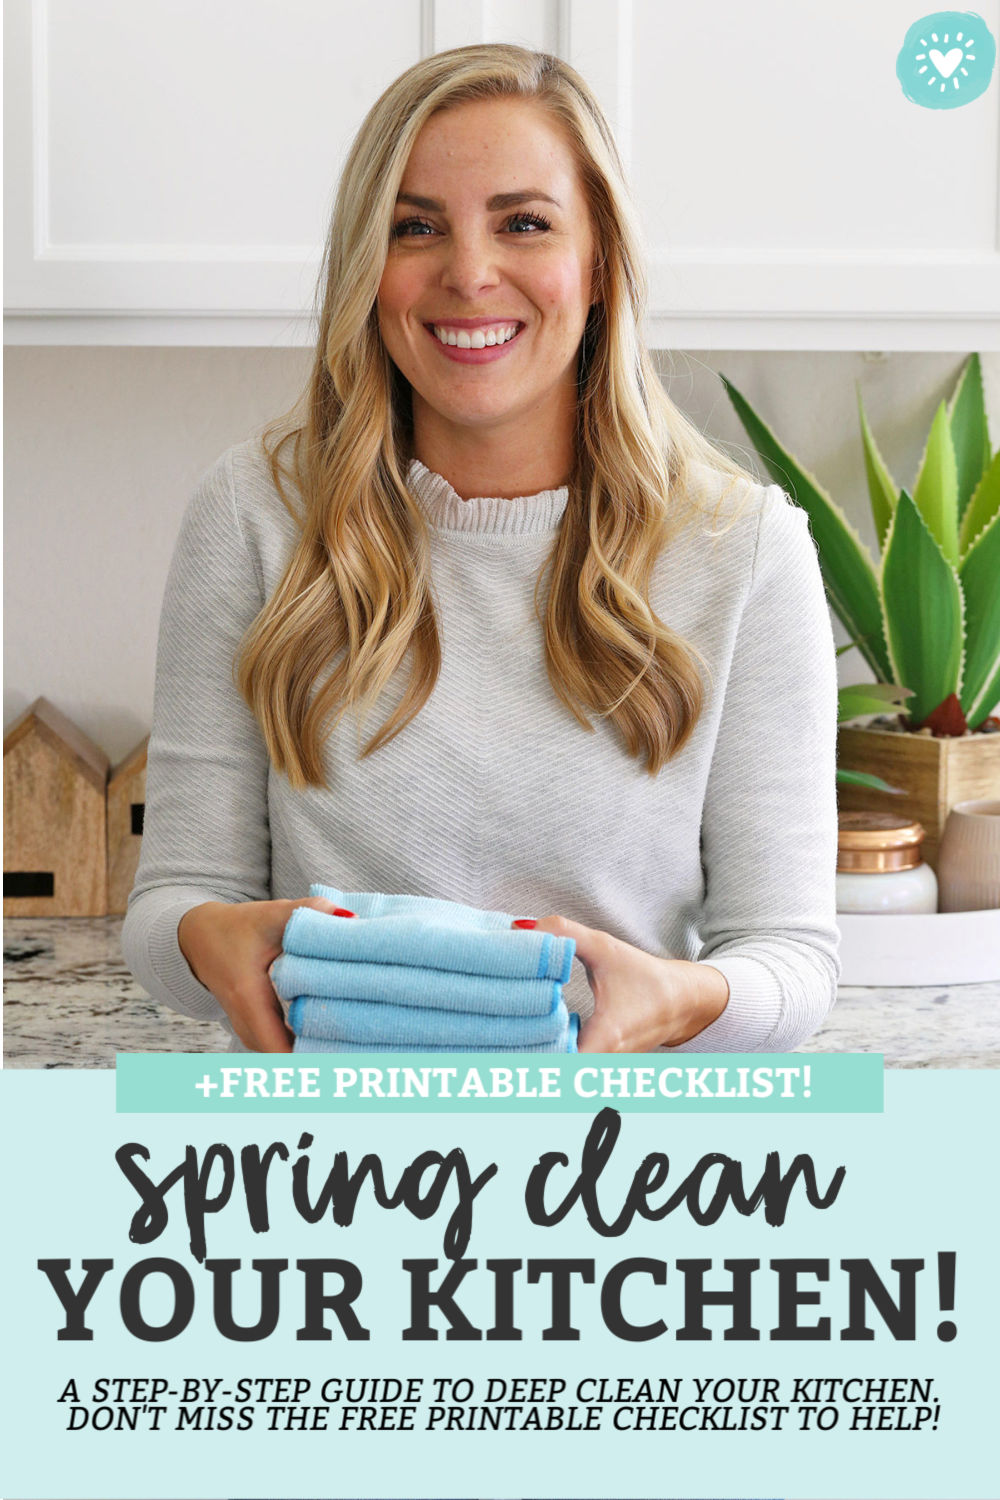 How to Deep-Clean Your Kitchen. A step-by-step checklist to clean your kitchen! Perfect for spring cleaning! // Kitchen Cleaning Tips // Spring Cleaning // Kitchen Cleaning Checklist #cleaningtips #springcleaning #kitchen #kitchentips #freeprintable